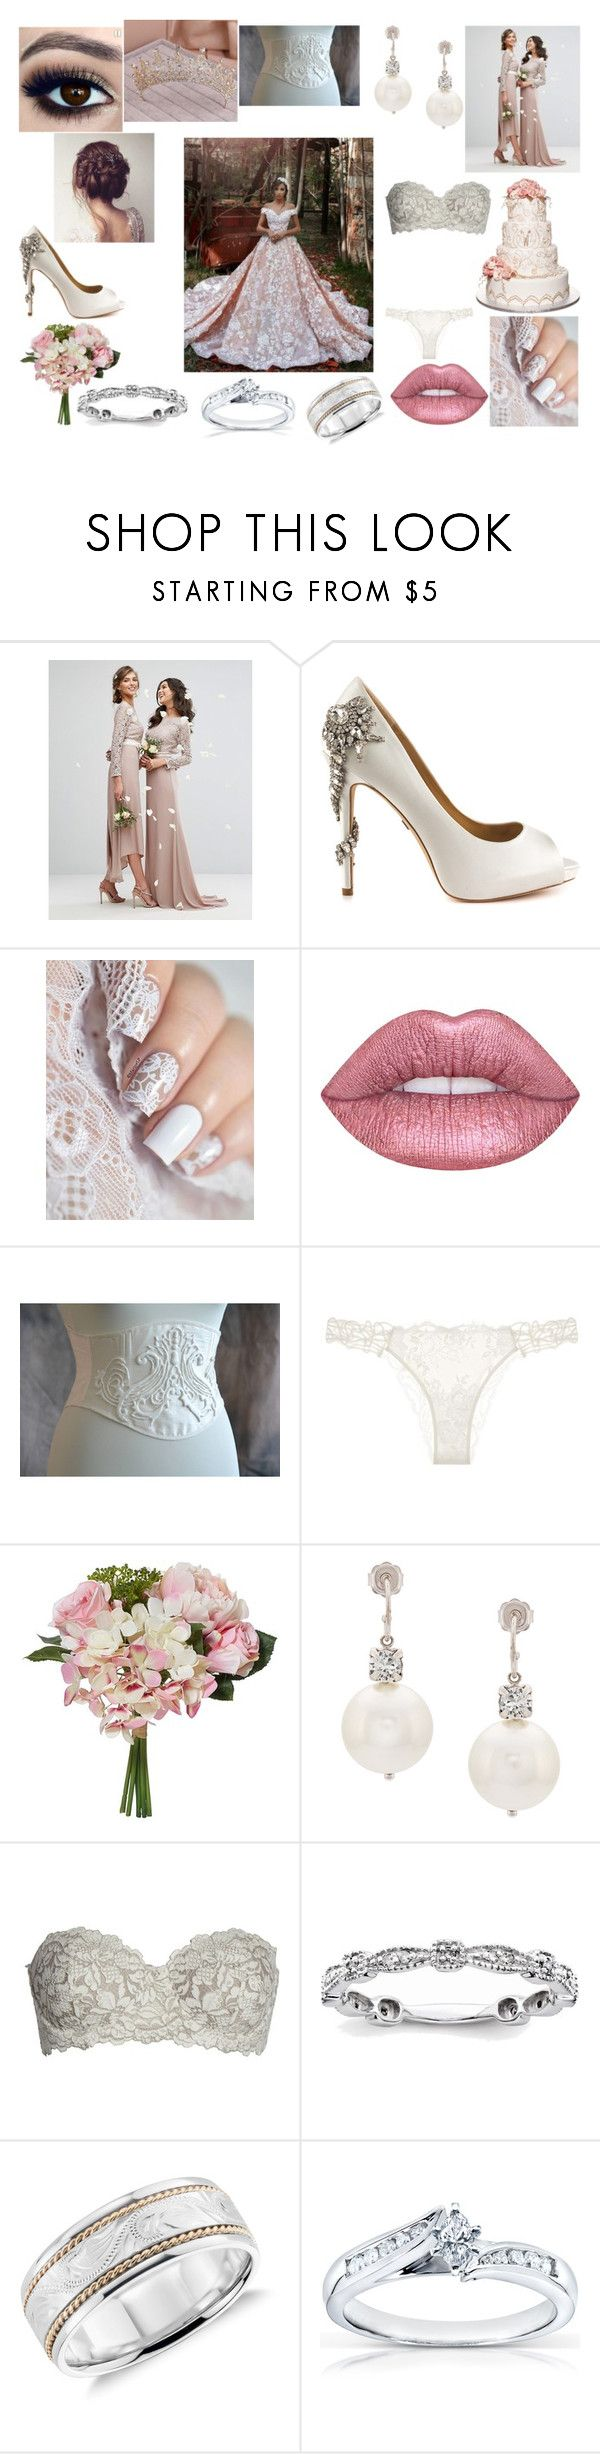 """Arranged marriage"" by luporagazza9 ❤ liked on Polyvore featuring TFNC, Badgley Mischka, Lime Crime, La Perla, Simone Rocha, Felina, Blue Nile and Annello"